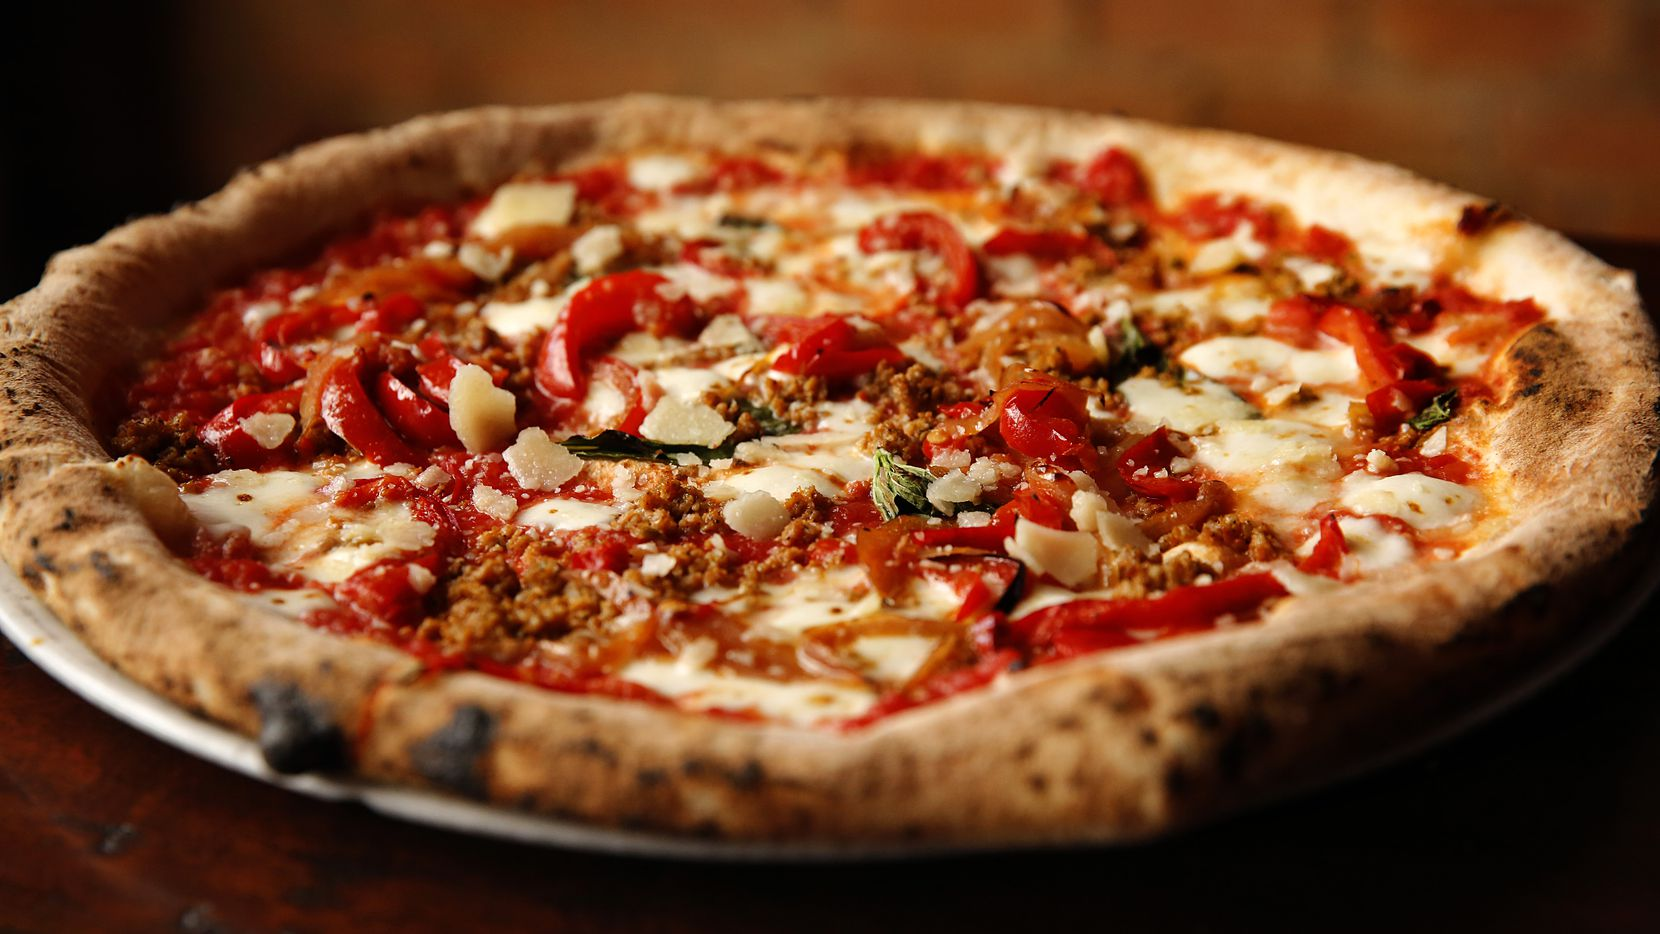 Cane Rosso received a $2,000 donation from Hidden Valley just after the D-FW pizza shop's dining rooms were forced to close because of COVID-19 concerns. Cane Rosso's staff plans to use it to deliver pizzas to those in need.